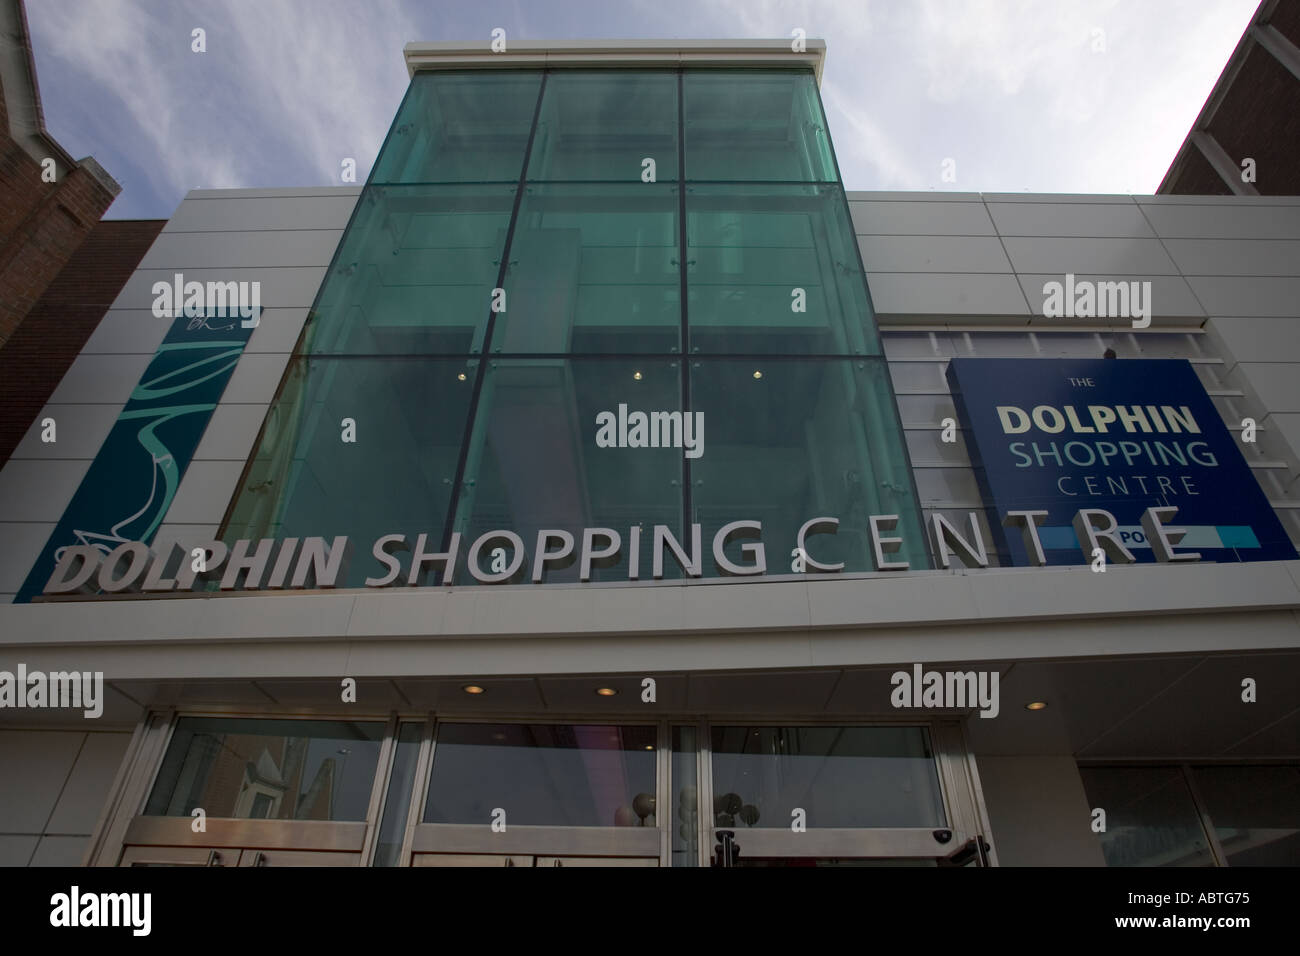 Dolphin Shopping Centre Poole